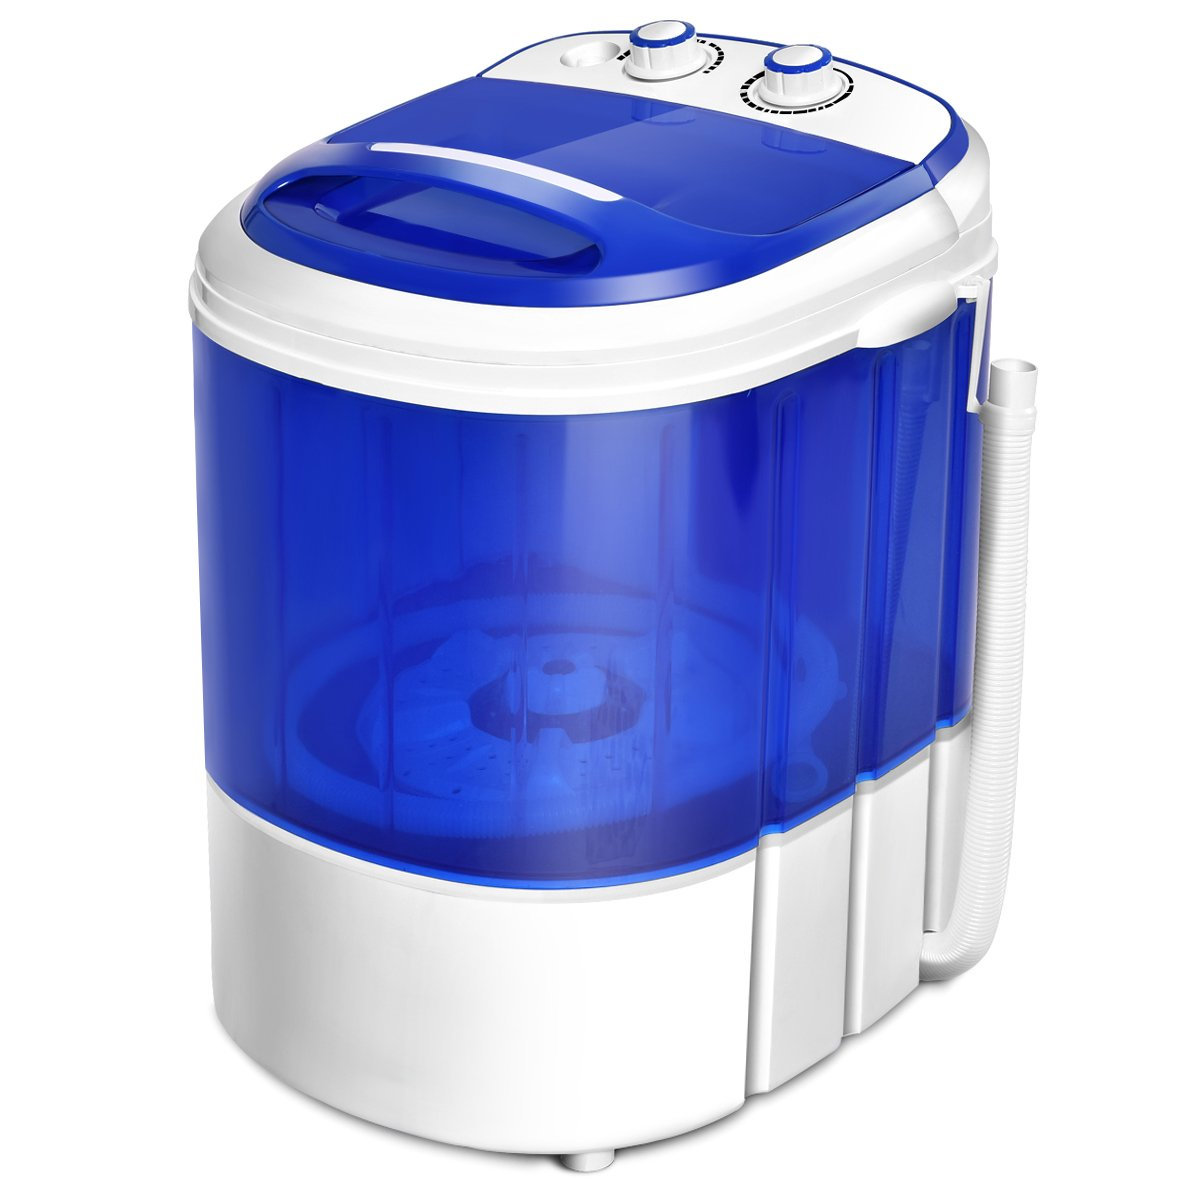 COSTWAY Mini Washing Machine, Portable Washer for Compact Laundry, Small Semi-Automatic Compact Washing Machine with Timer Control Single Translucent Tub 7lbs Capacity(Blue + White) by COSTWAY